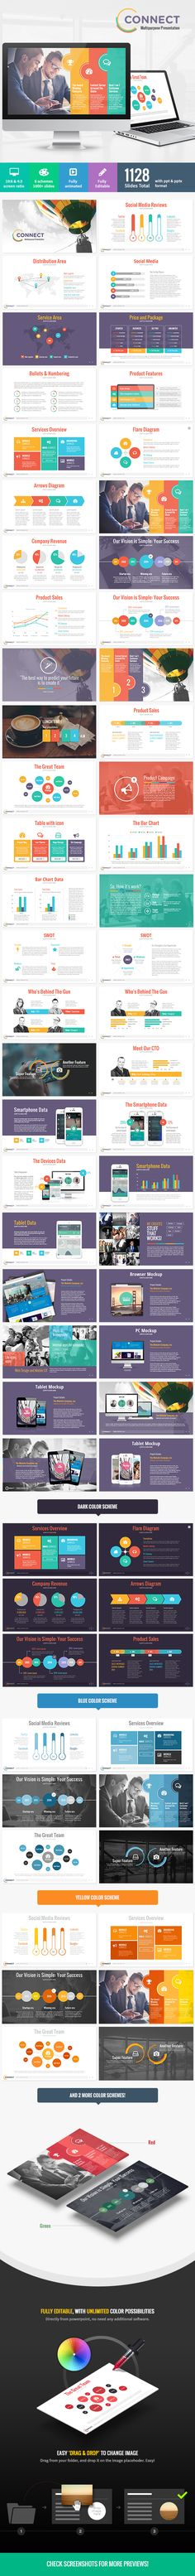 Connect - Modern Powerpoint Template (Powerpoint Templates)